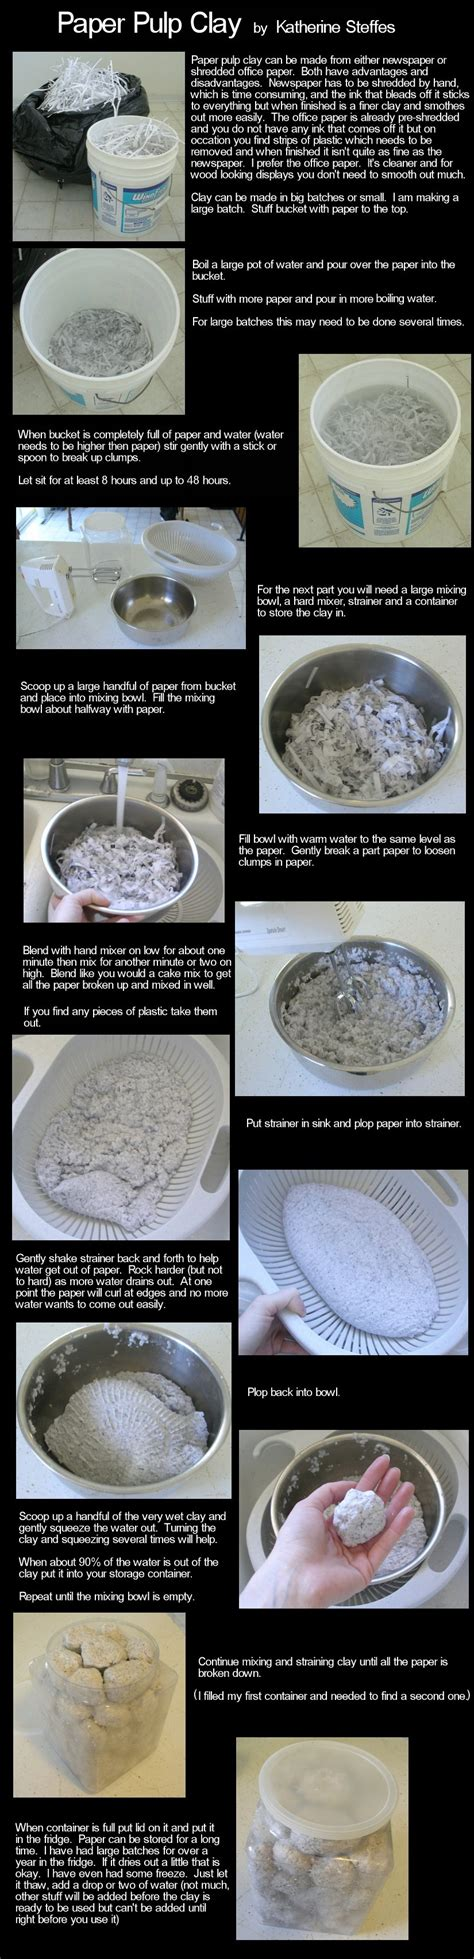 paper mache recipe paper mache as an art medium hubpages